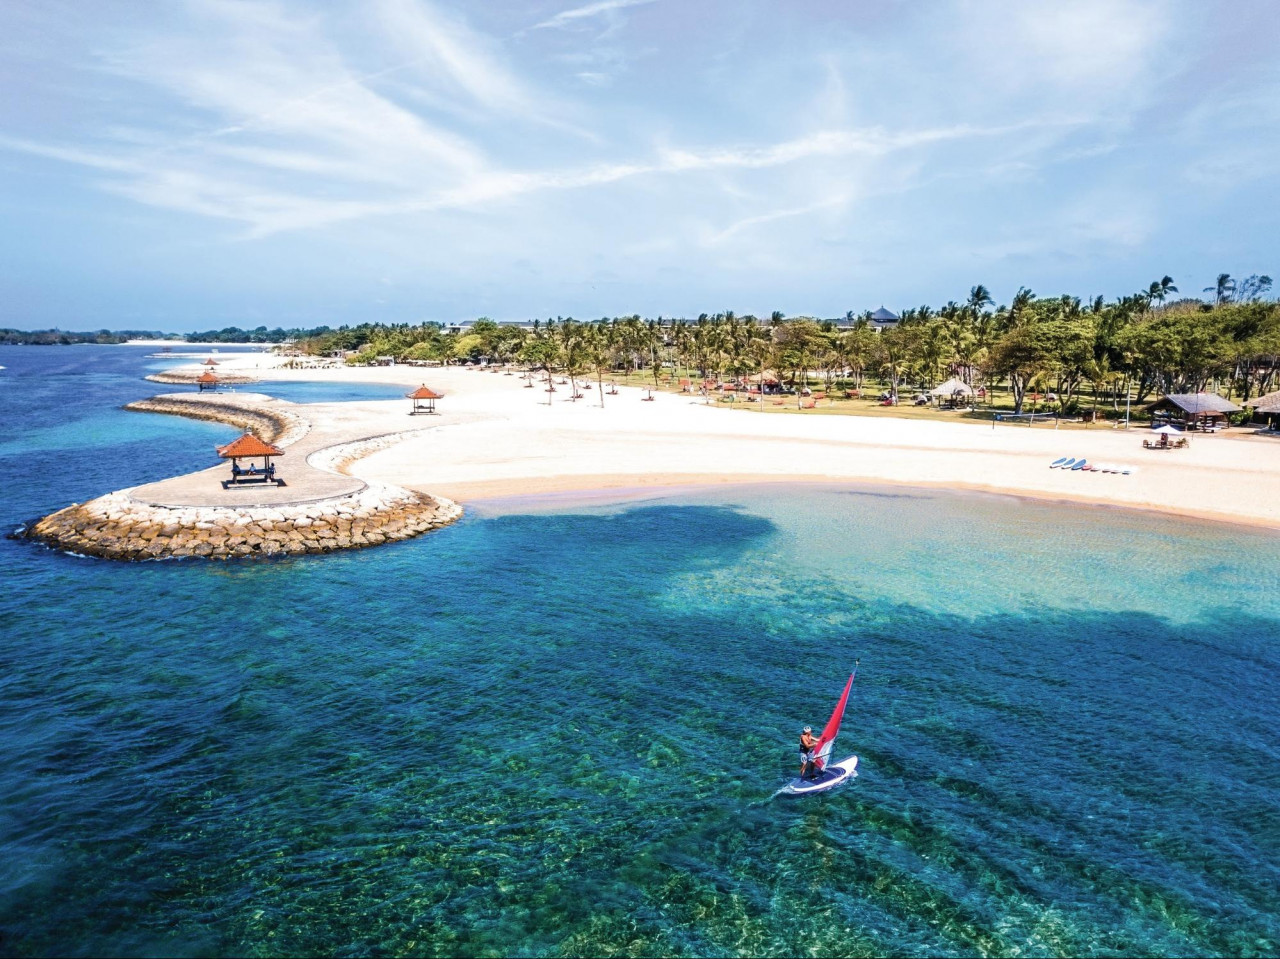 The Island Exchange - win a trip to Club Med Bali